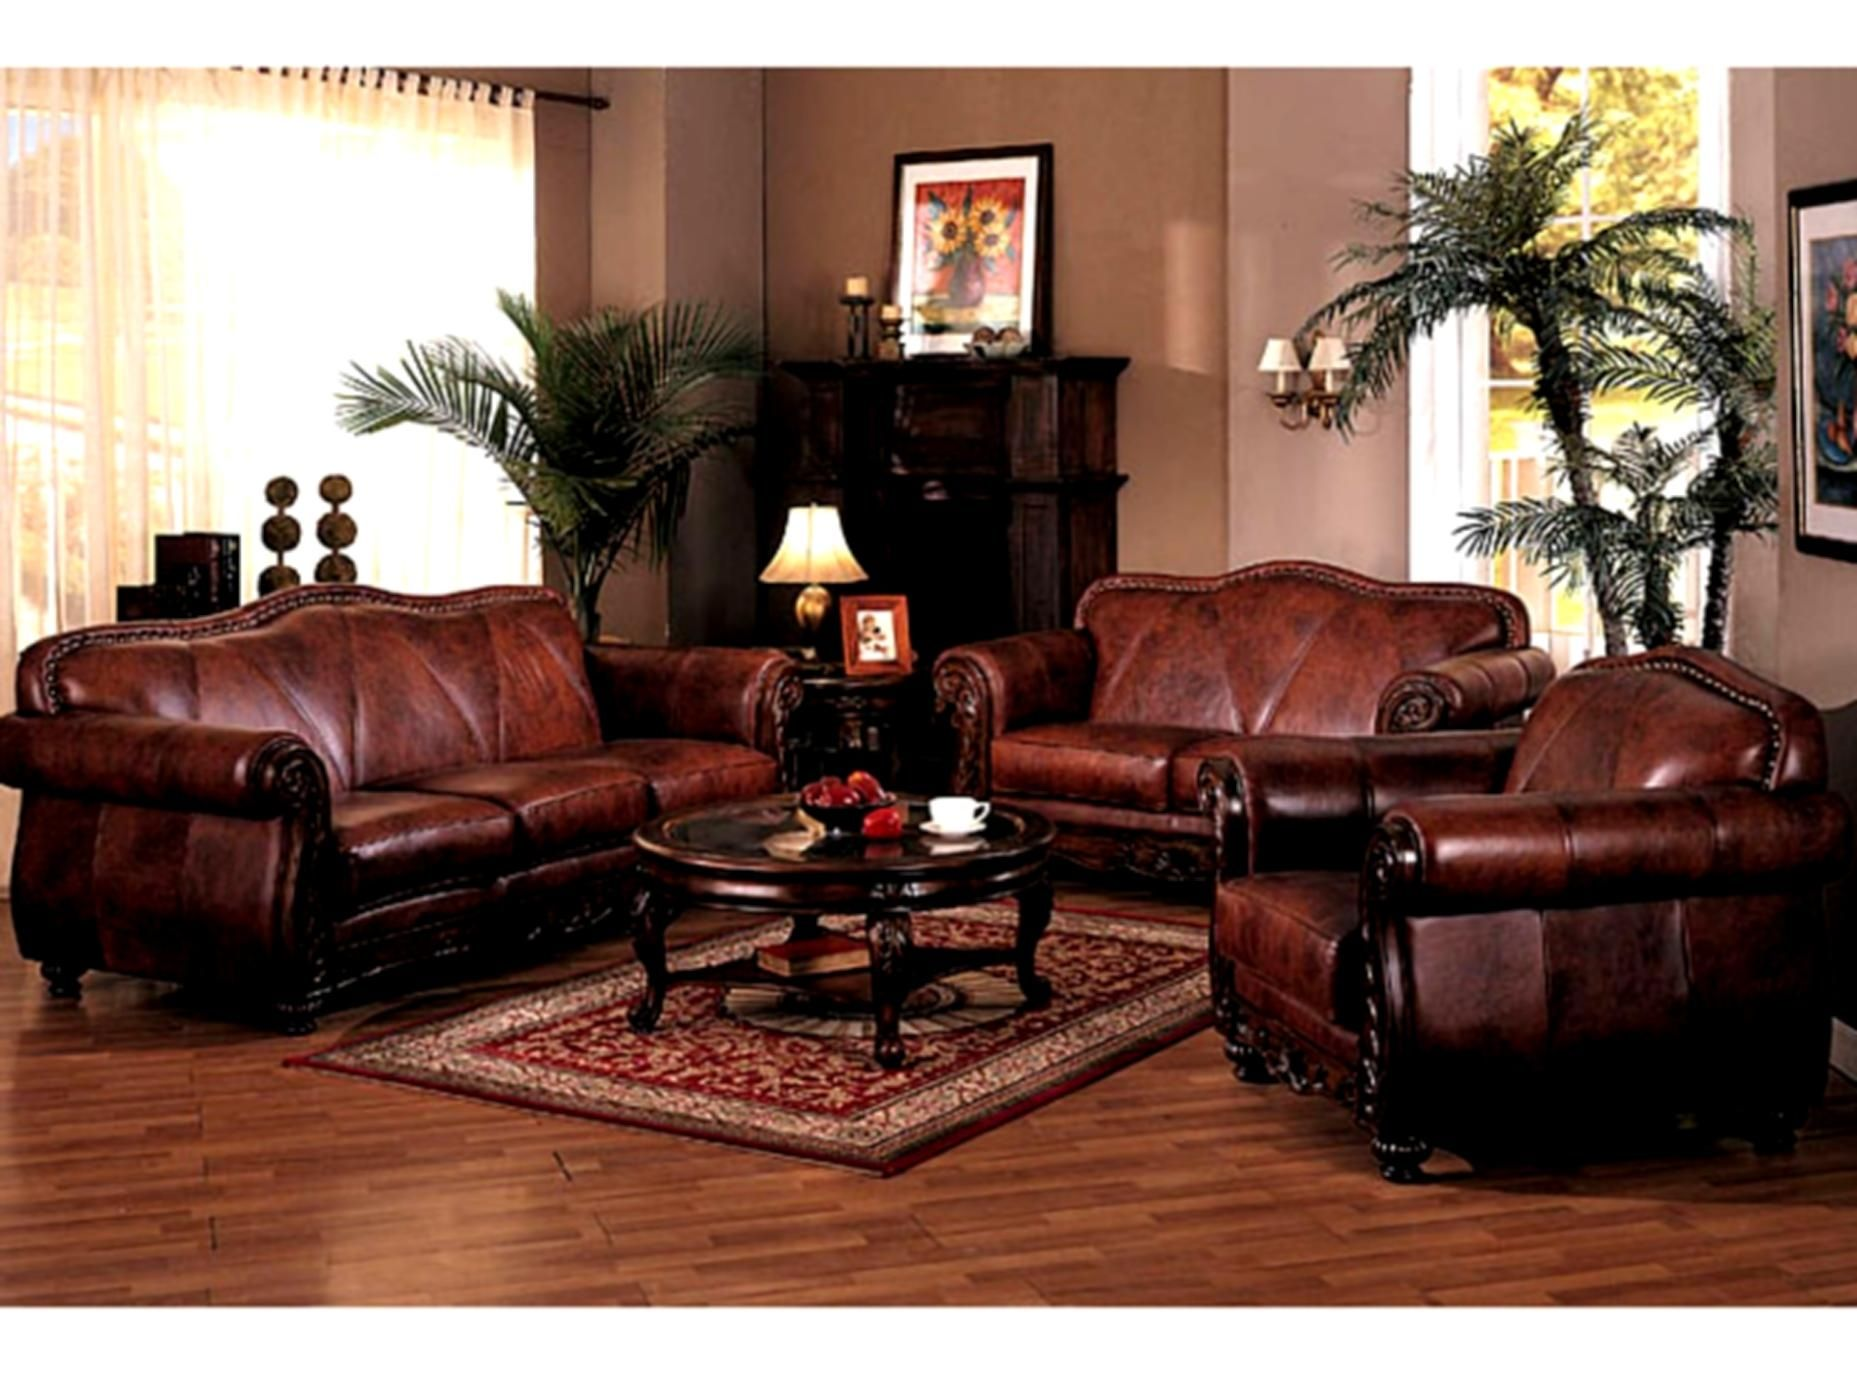 luxury leather living room sets ideas for painting dining combo cool traditional couches collection luxurious sofa with show wood